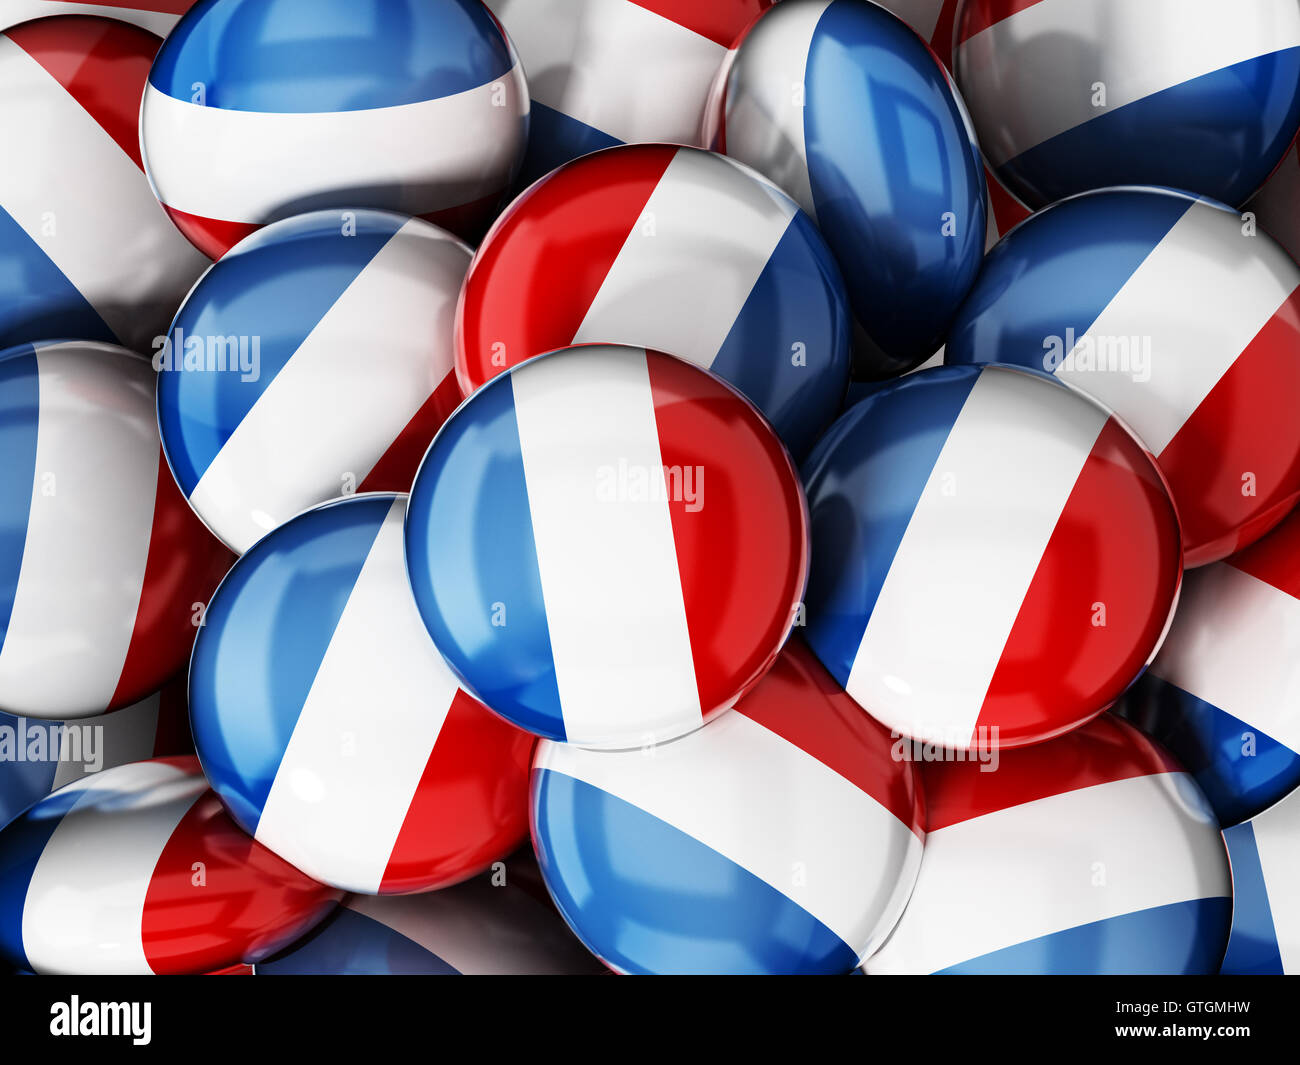 Stack of buttons with French flag. 3D illustration. - Stock Image